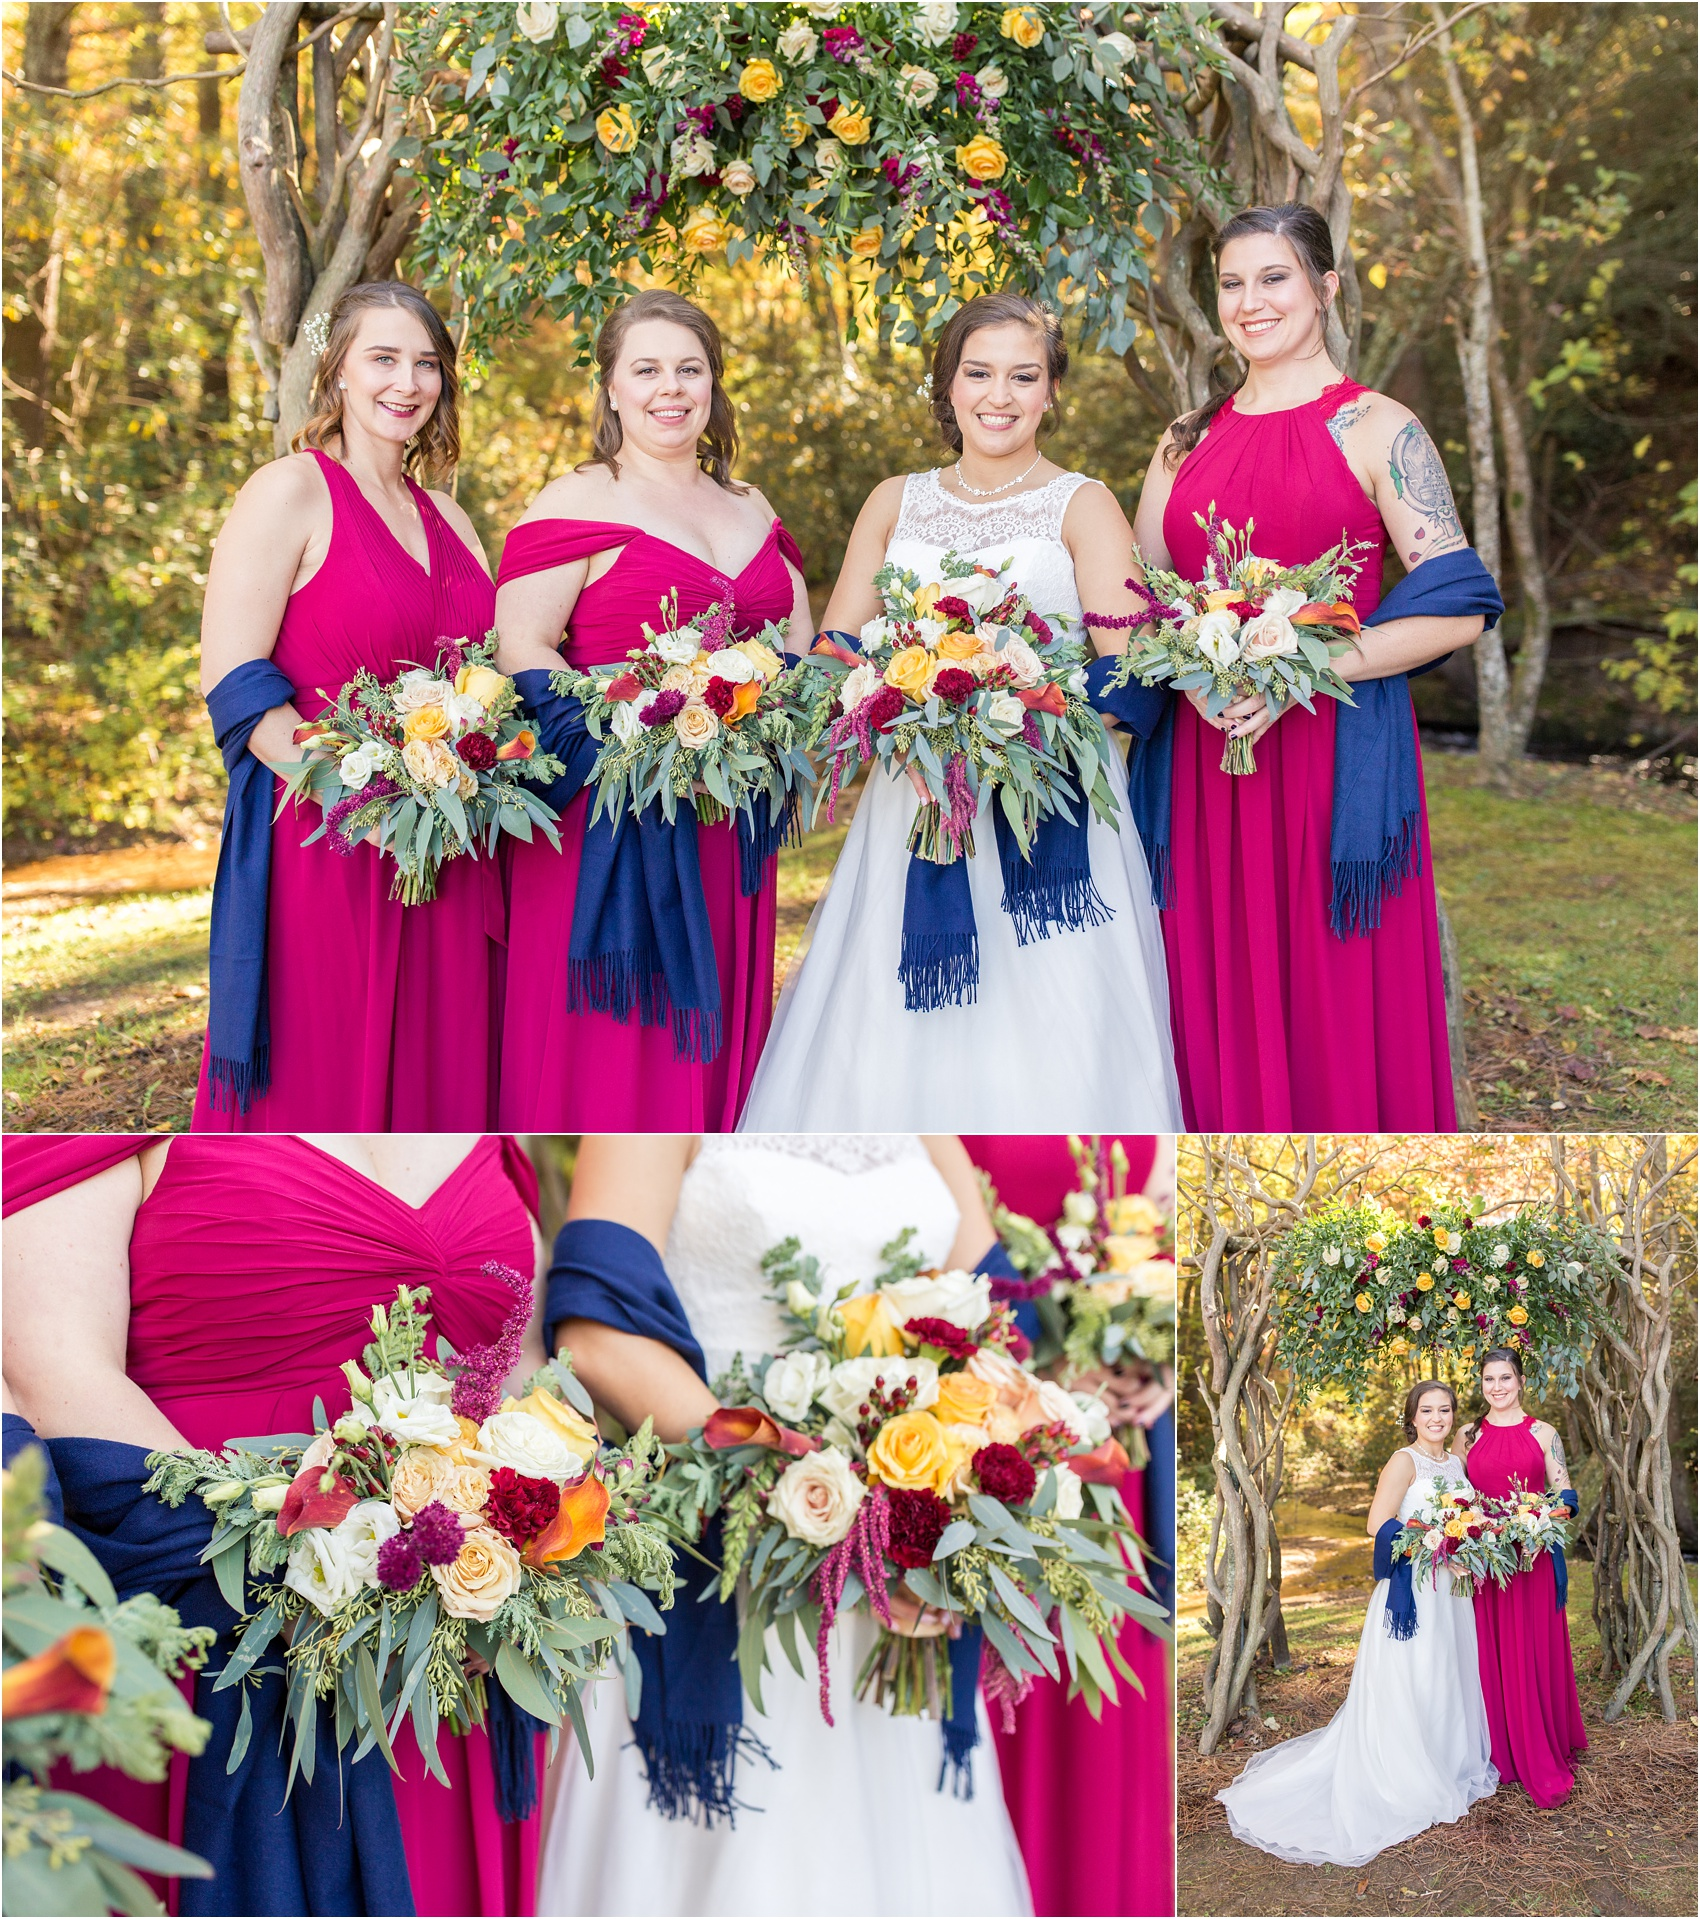 Savannah Eve Photography- McGeary-Epp Wedding- Sneak Peek-51.jpg